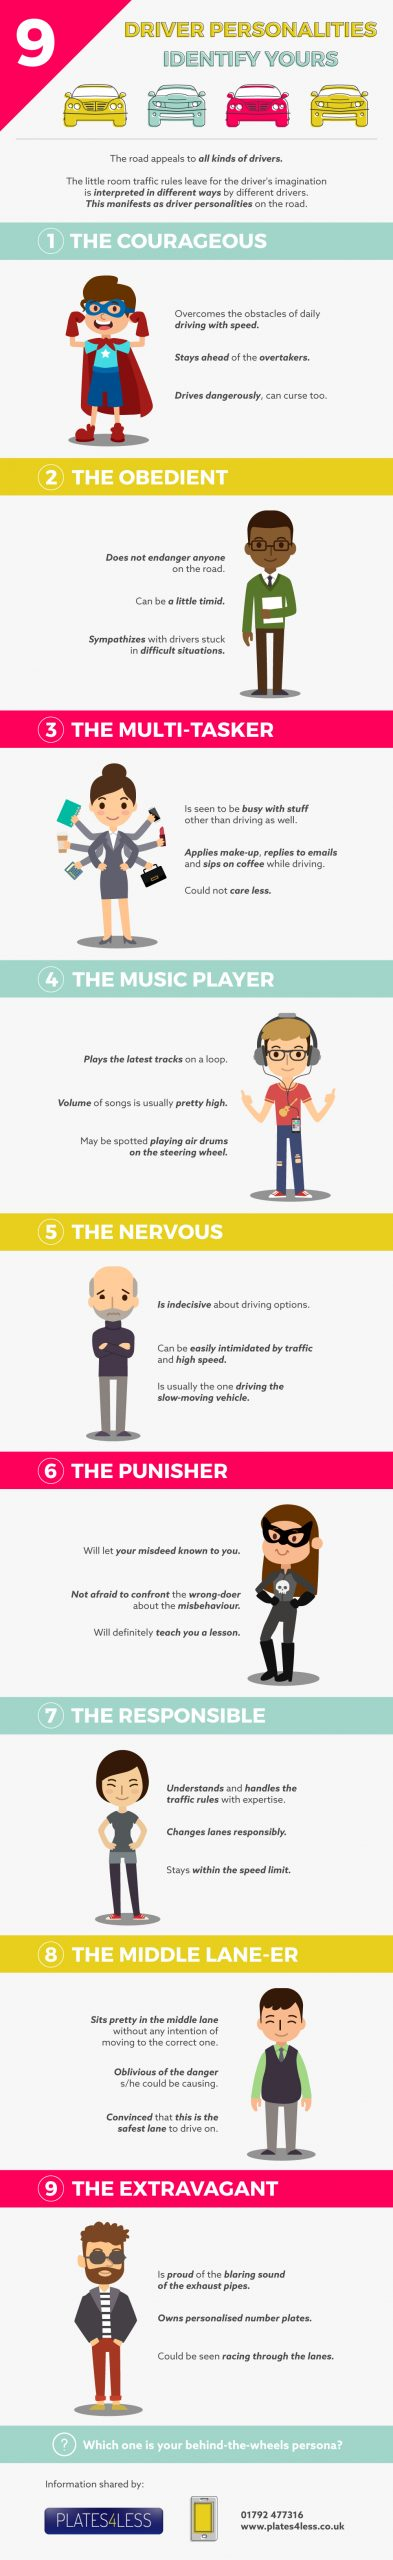 9-Driver-Personalities--Identify-Yours